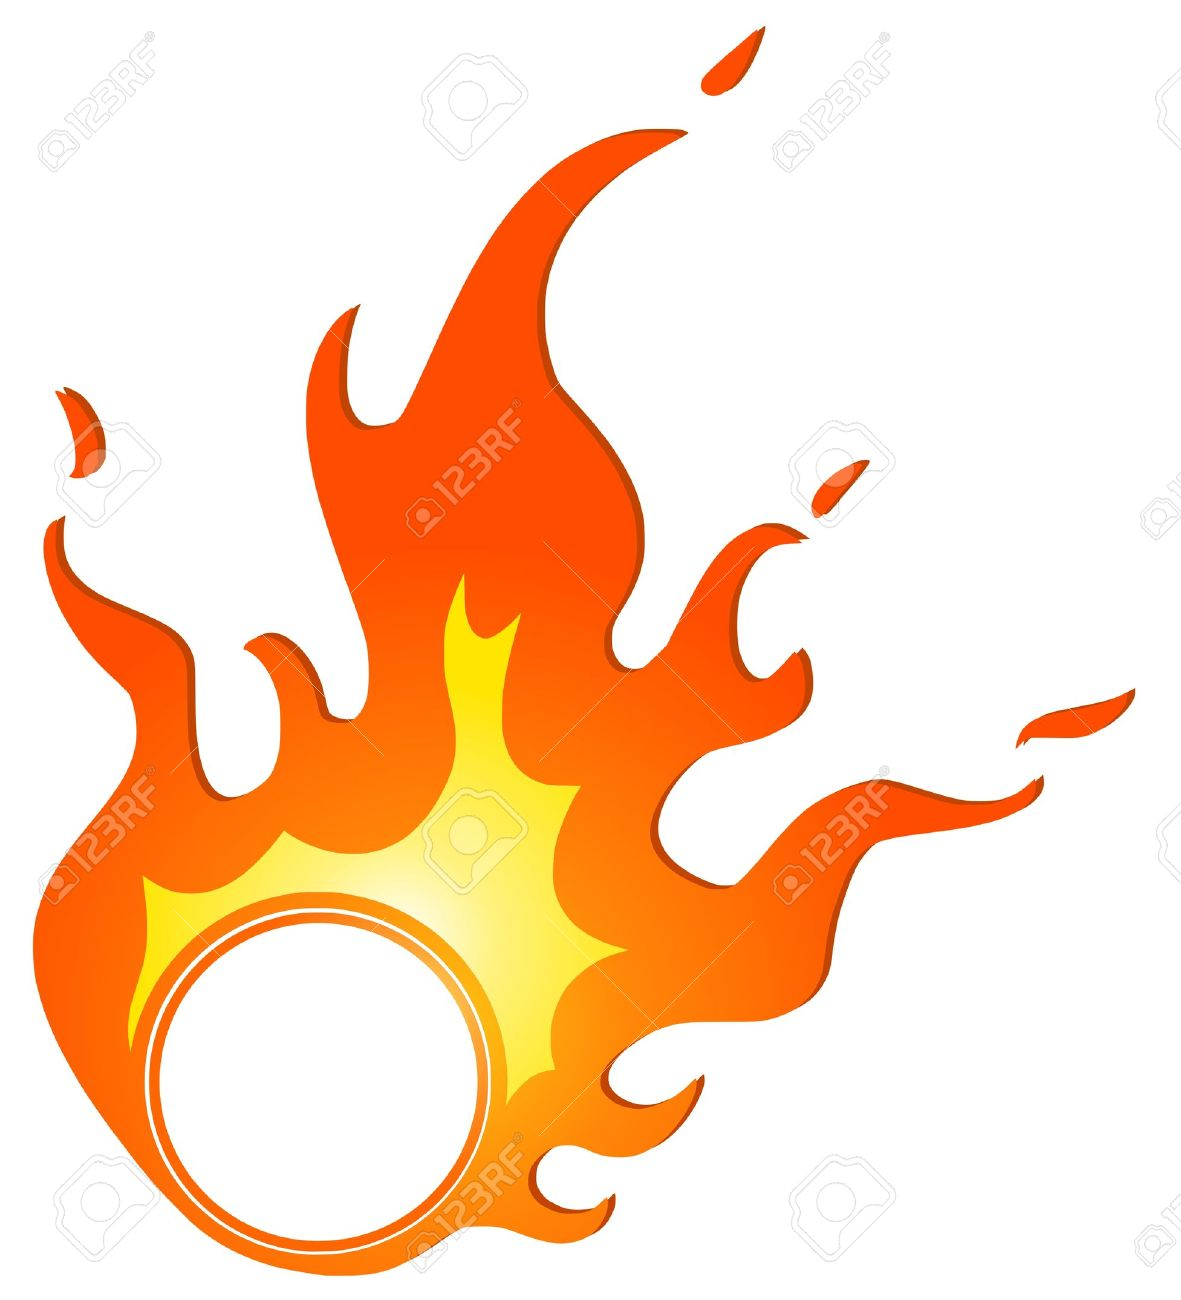 Ring of fire clipart svg black and white stock Ring of fire clipart 4 » Clipart Station svg black and white stock